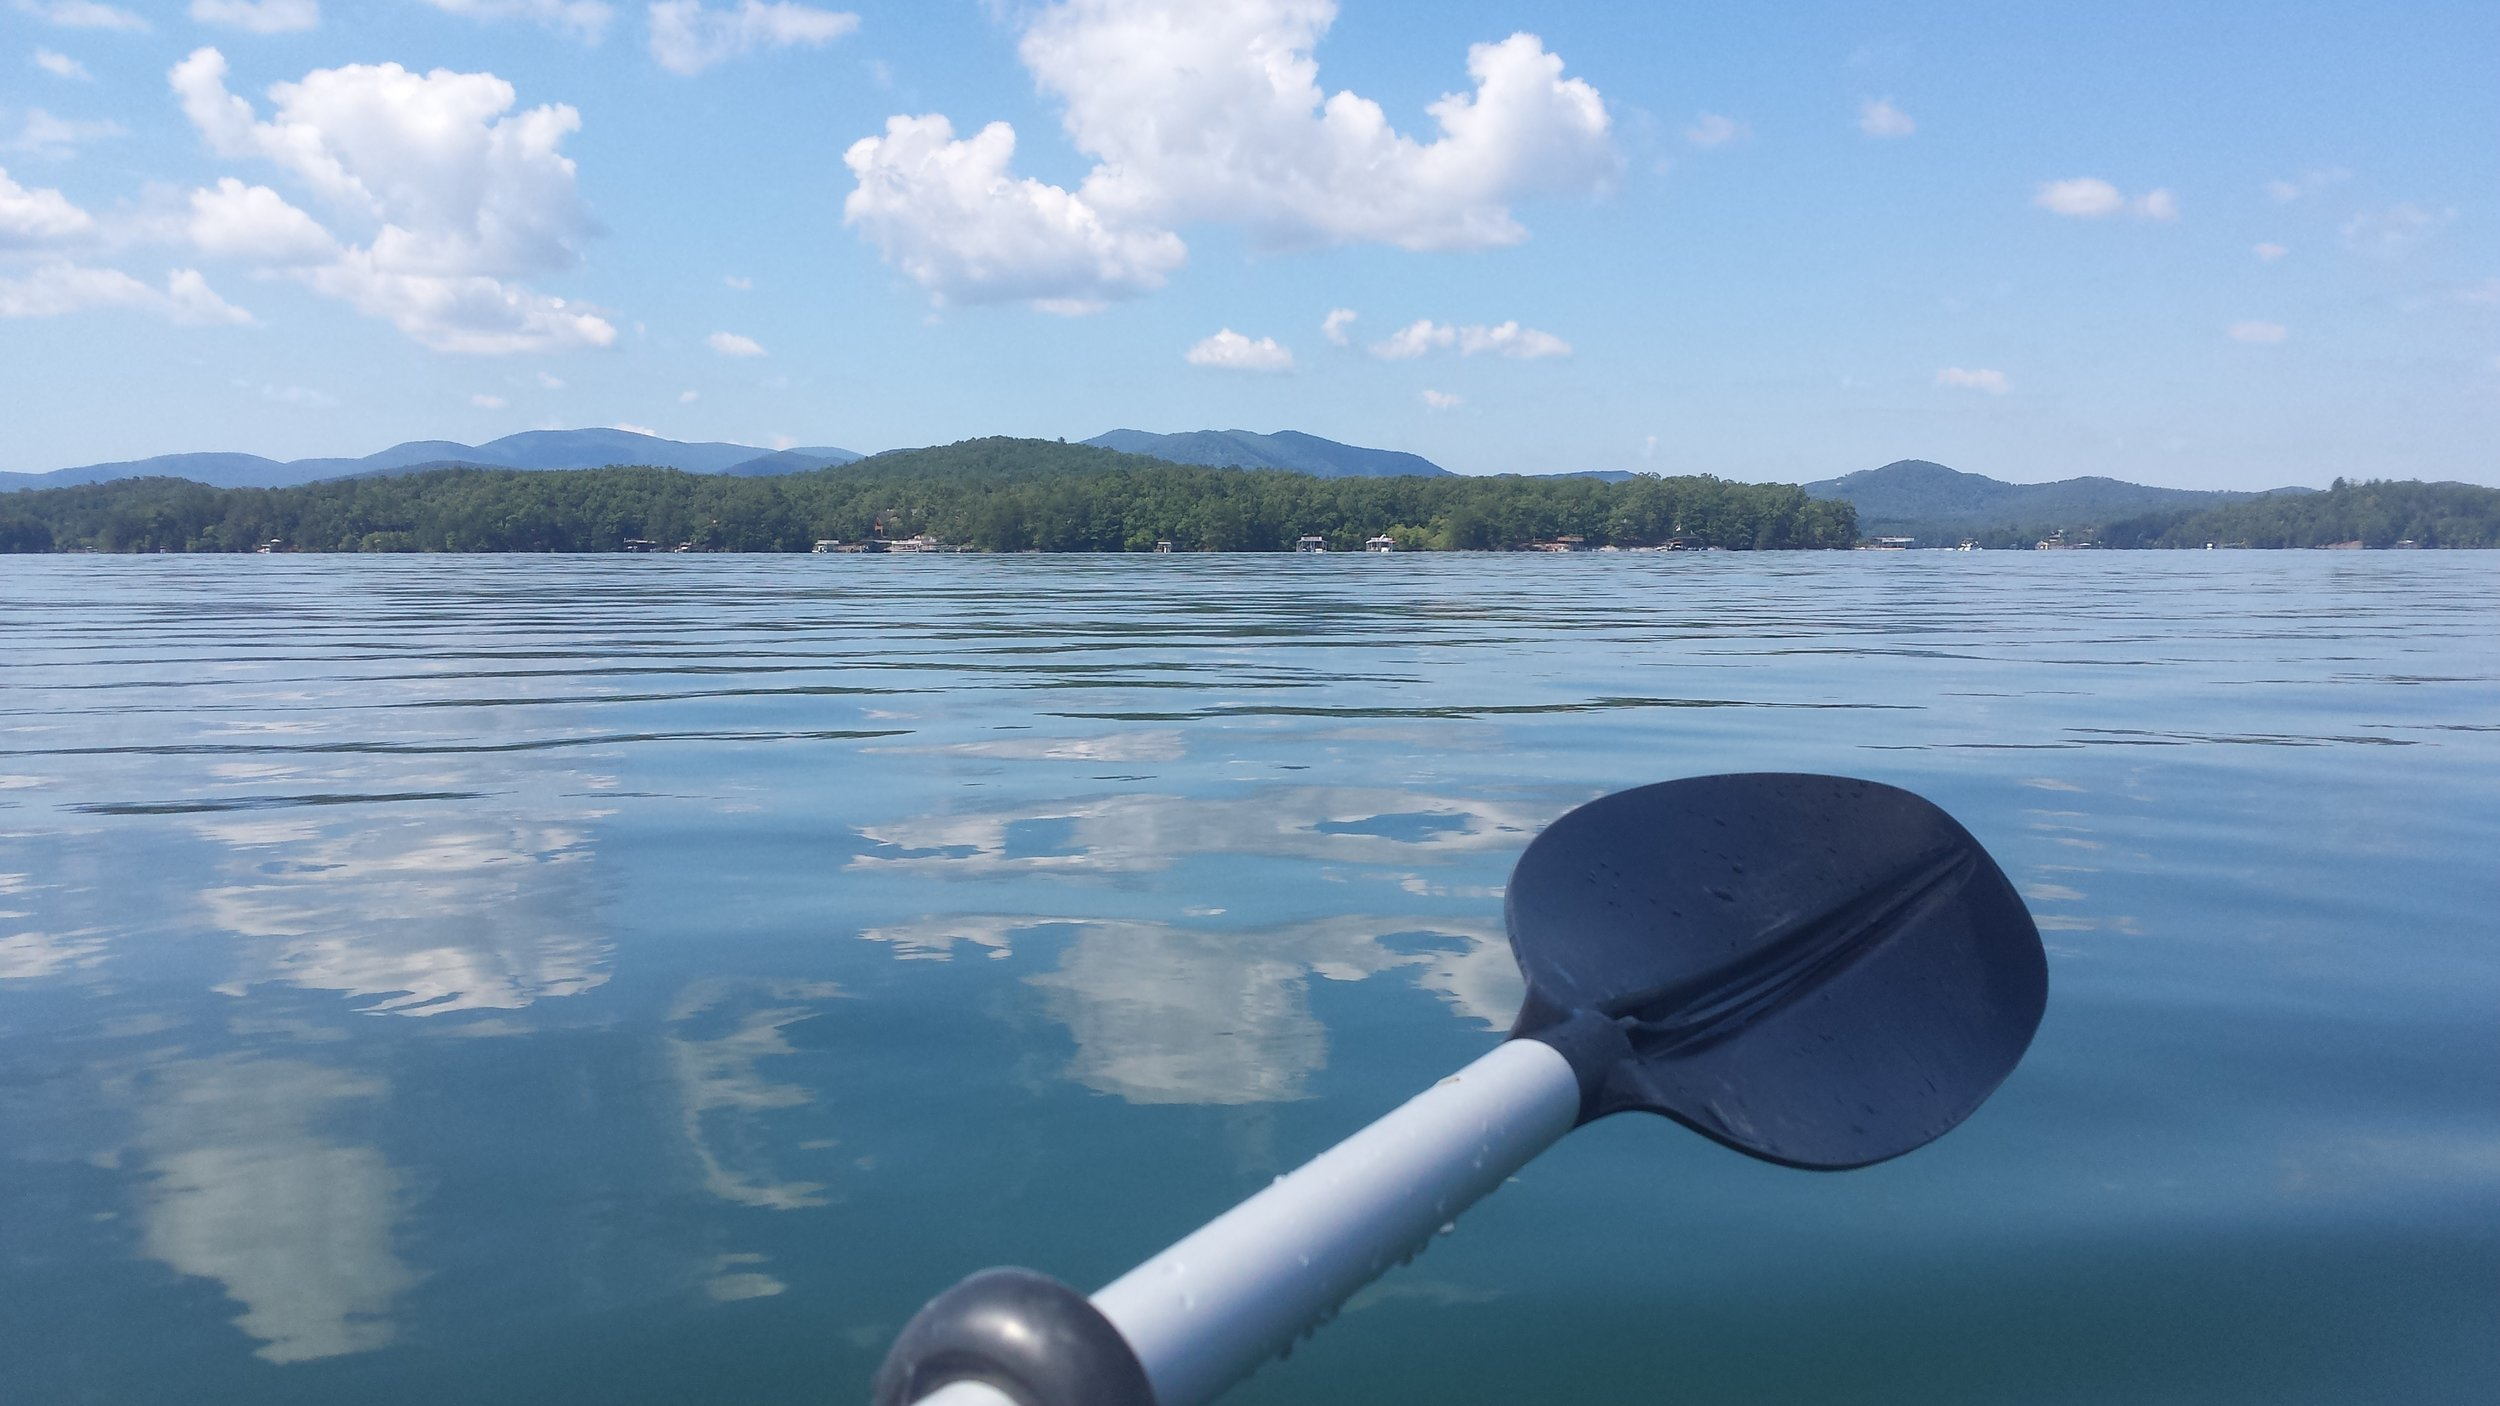 Nothing like a quiet paddle on a mountain lake